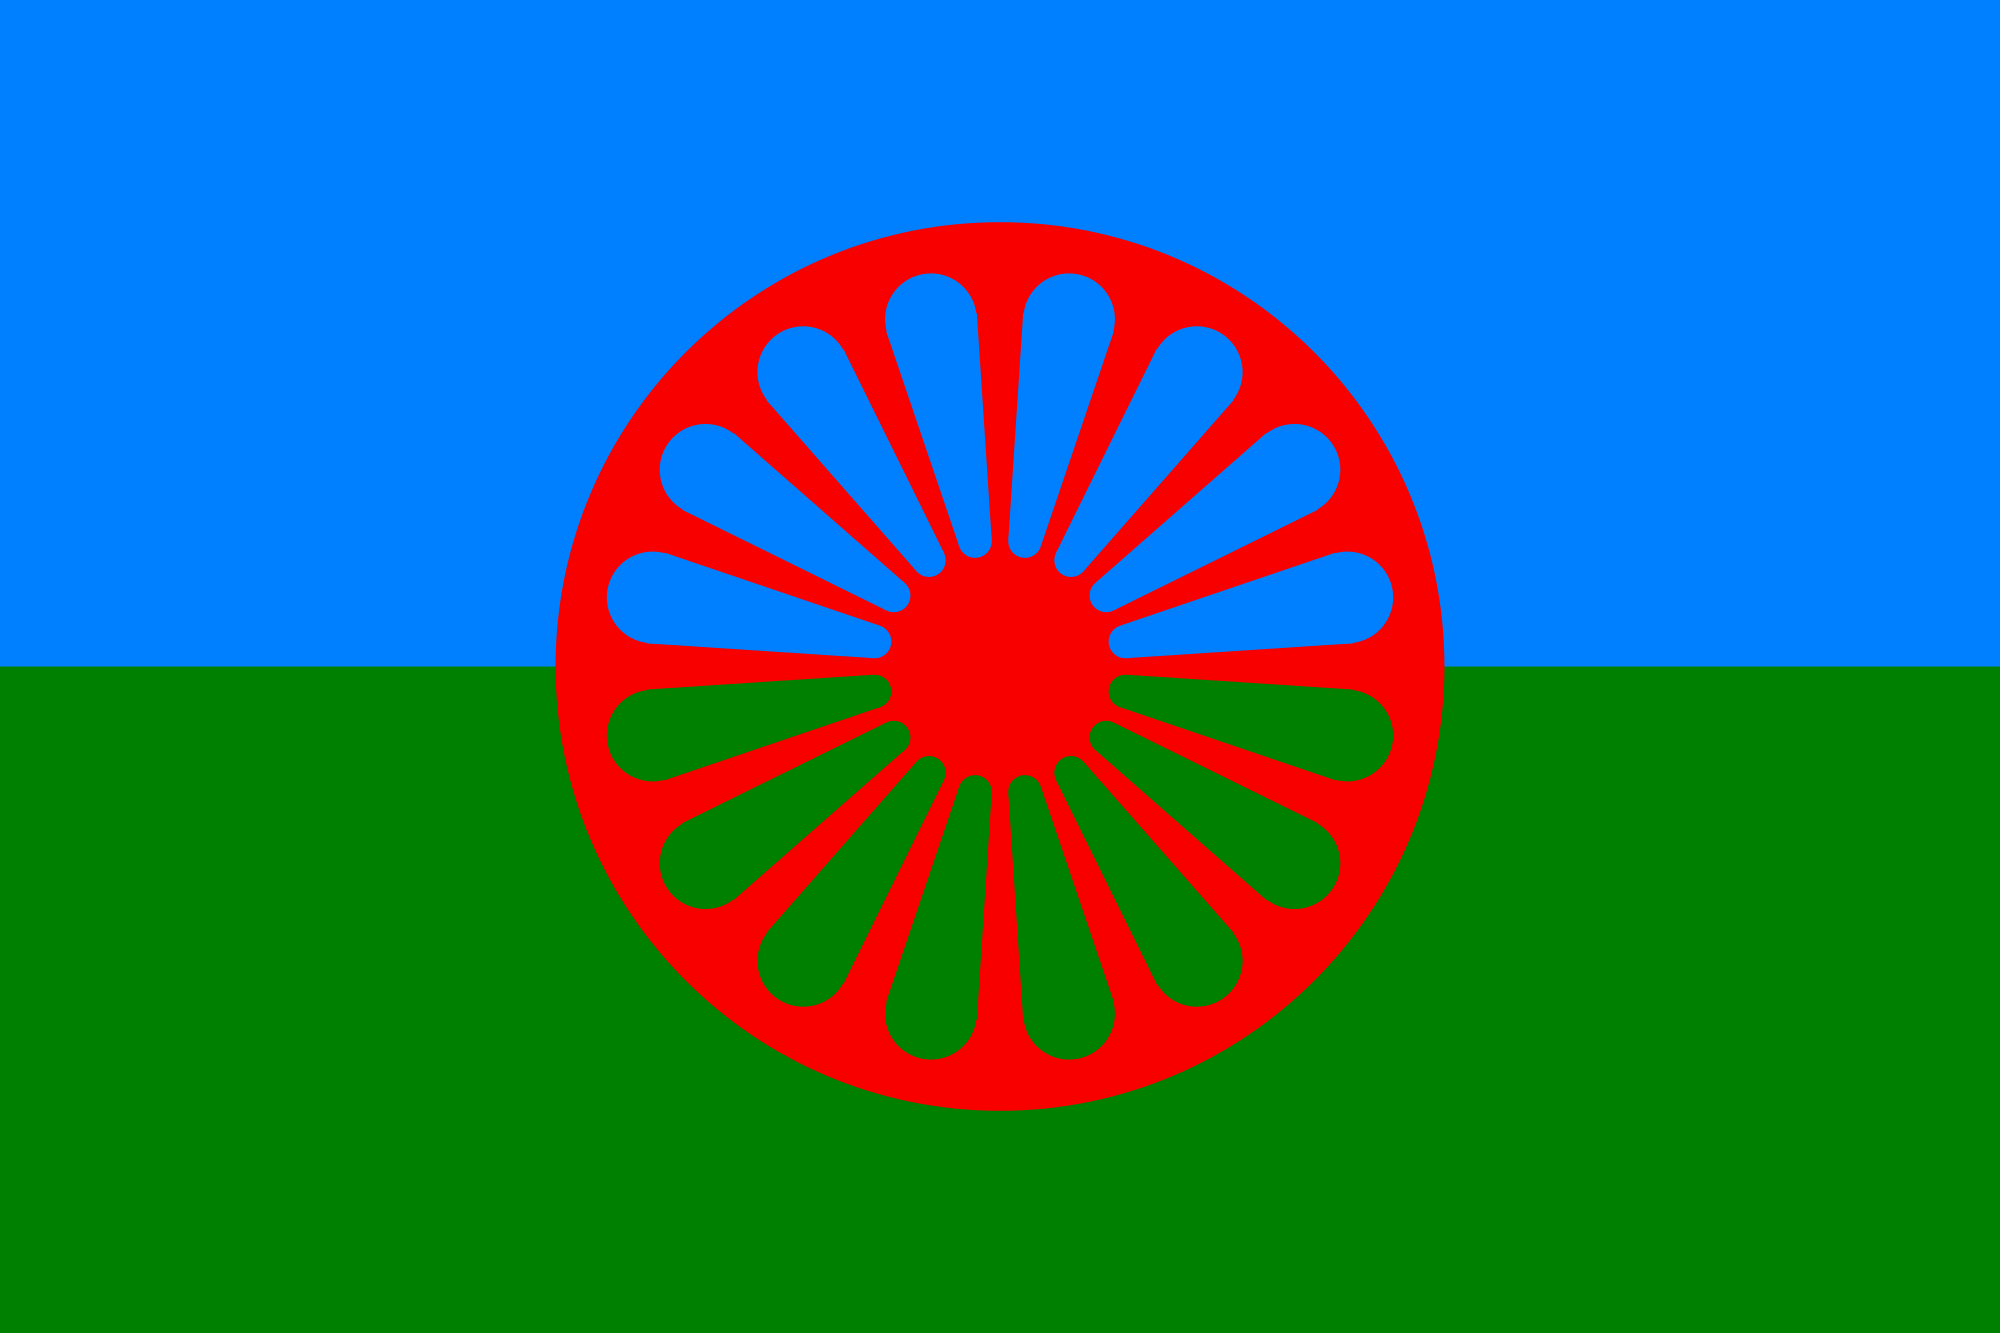 Flag_of_the_Romani_people.svg